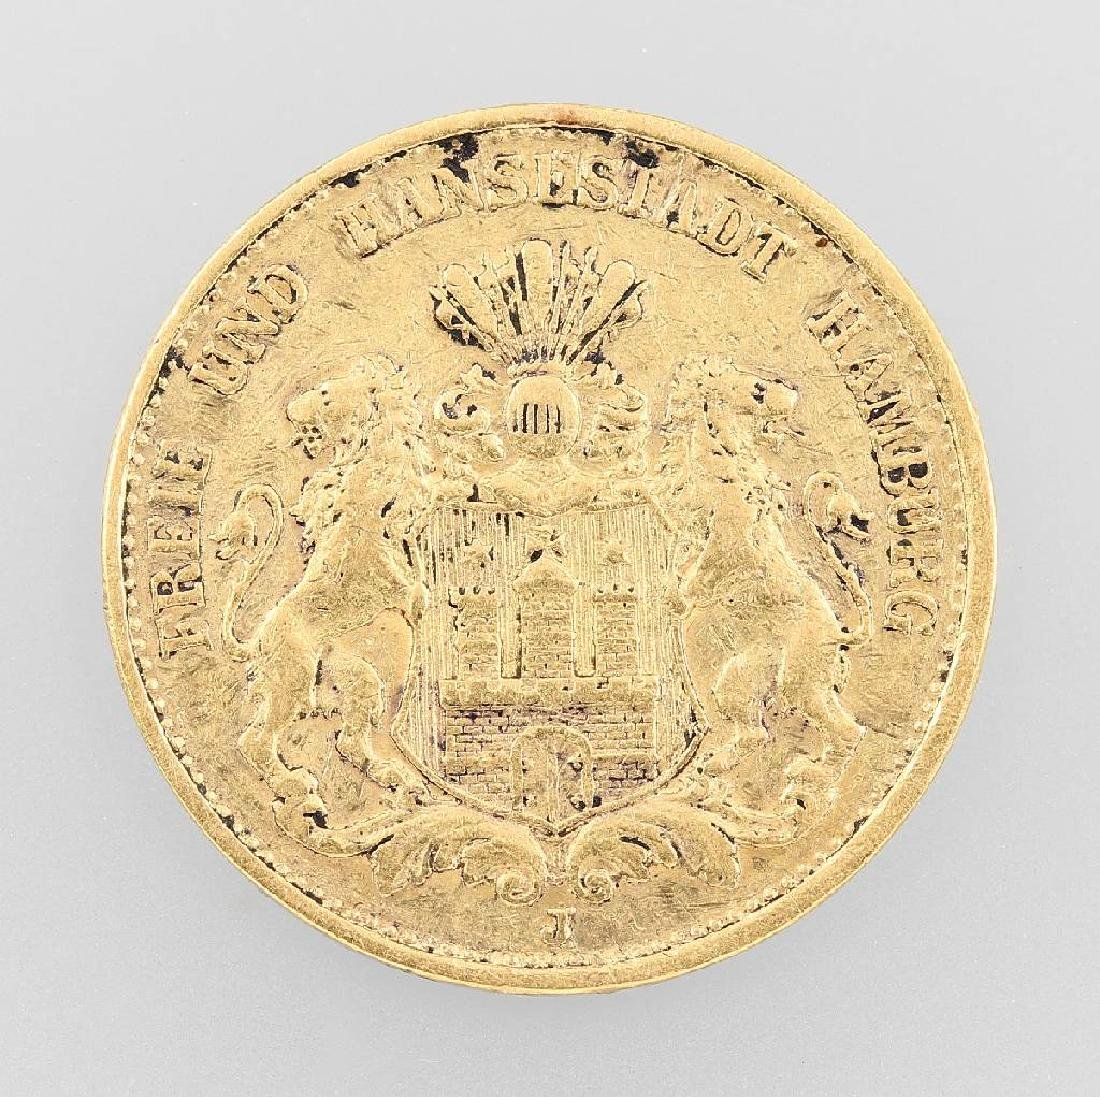 Gold coin, 20 Mark, German Reich, 1884